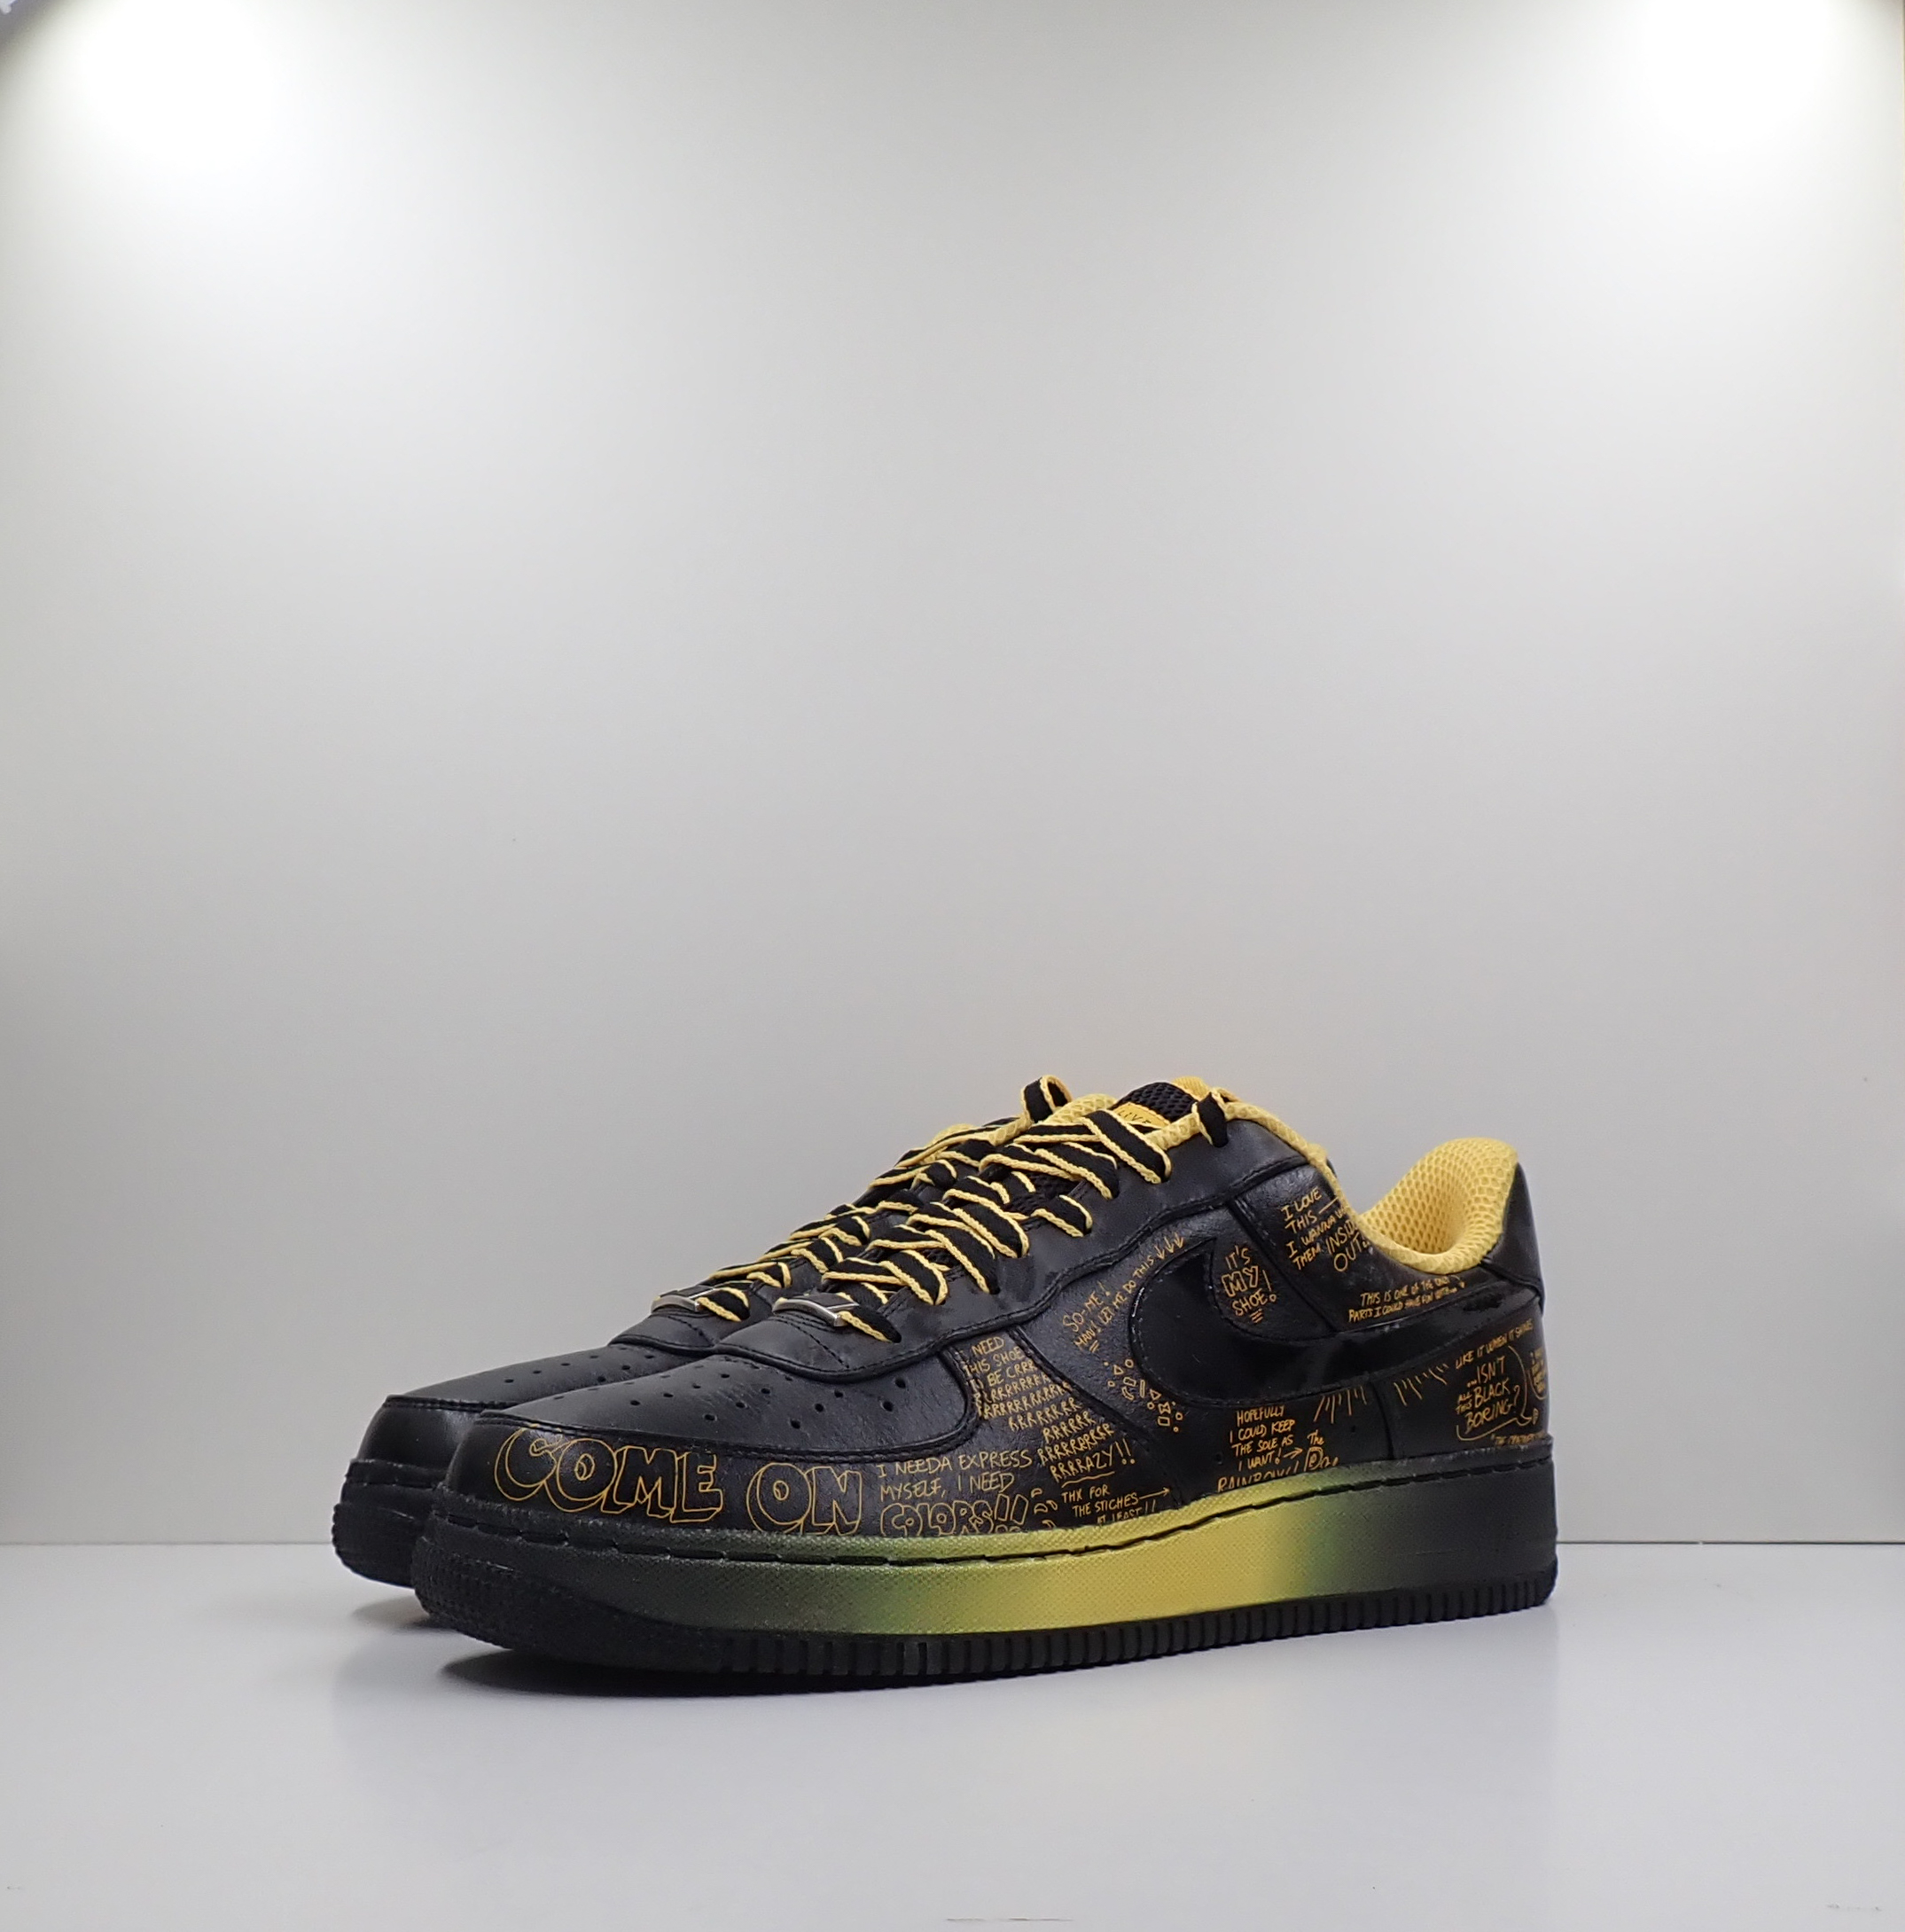 Nike Air Force 1 Low Busy P Livestrong